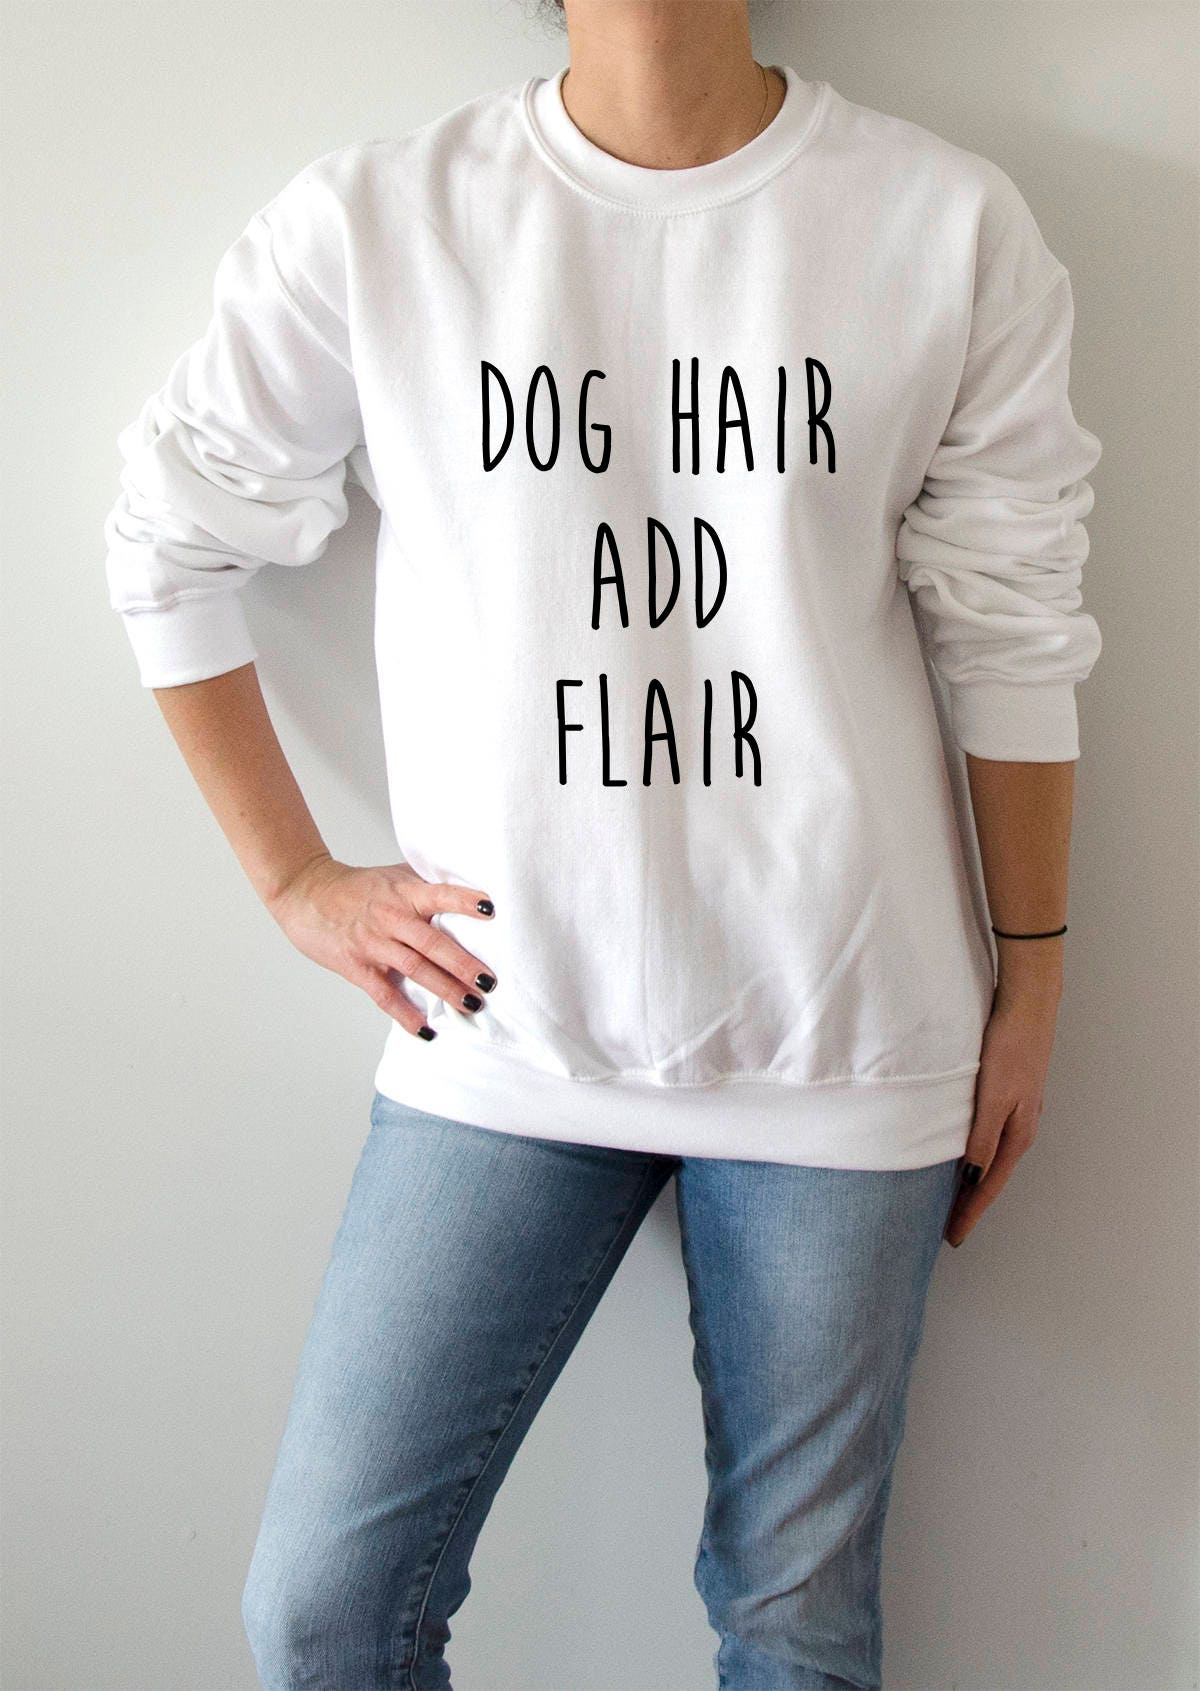 Dog Hair Add Flair Sweatshirt Unisex For Women Fashion Teen Etsy